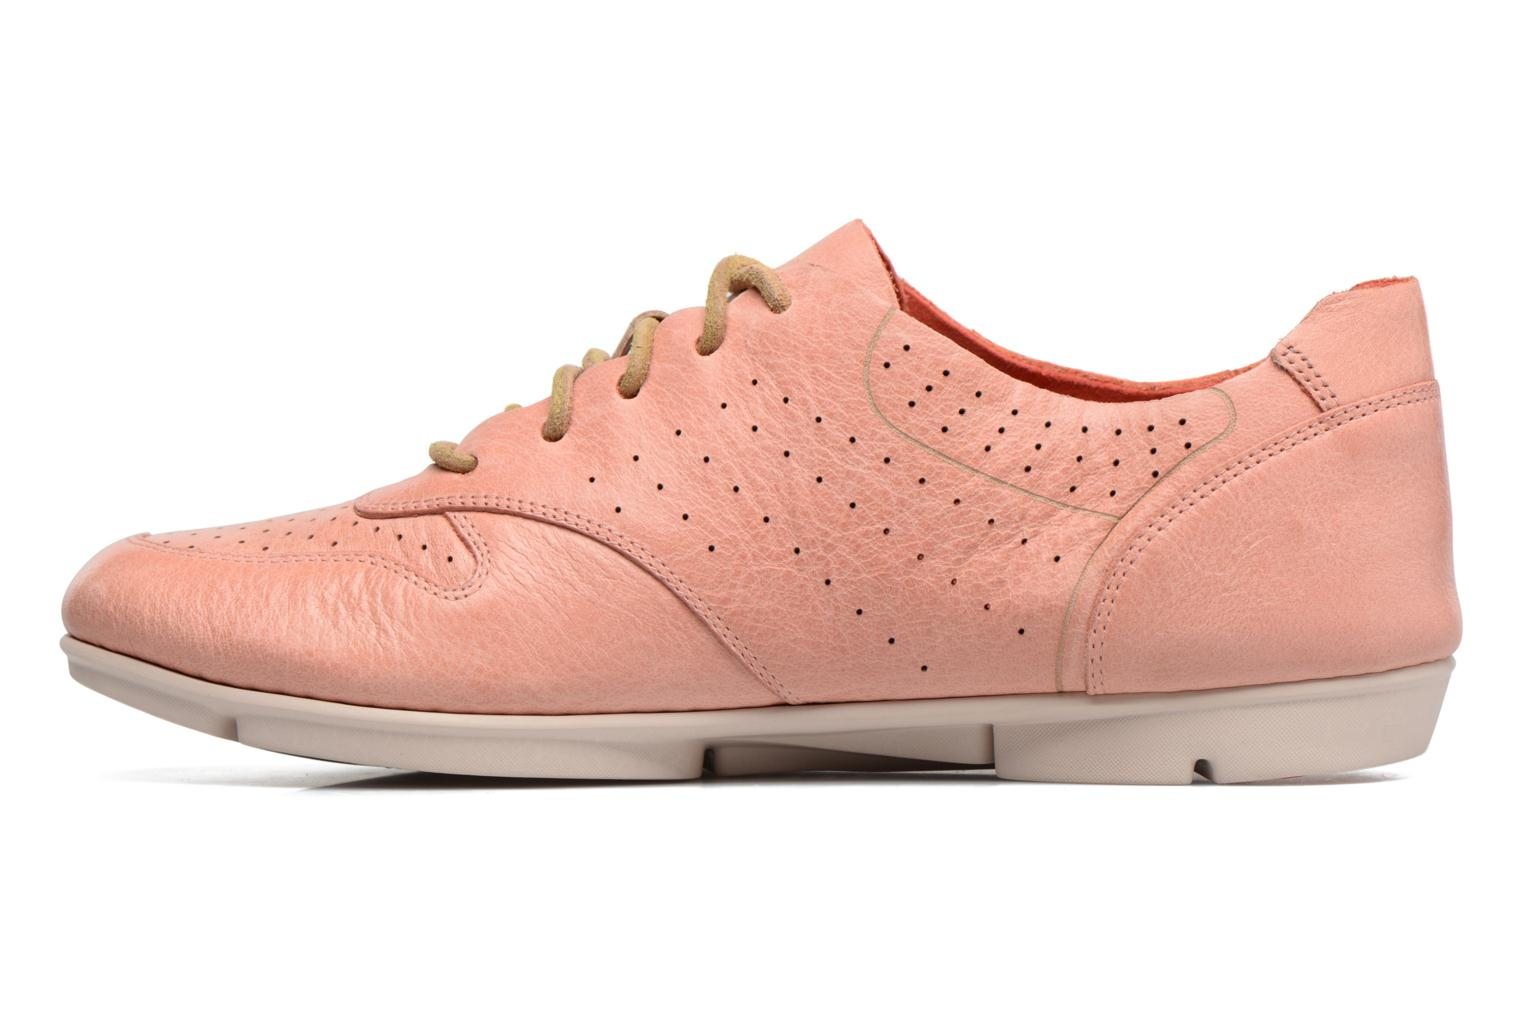 Leather Tri Tri Clarks Actor Coral Actor Tri Clarks Leather Coral Clarks 1fTd5dWwq